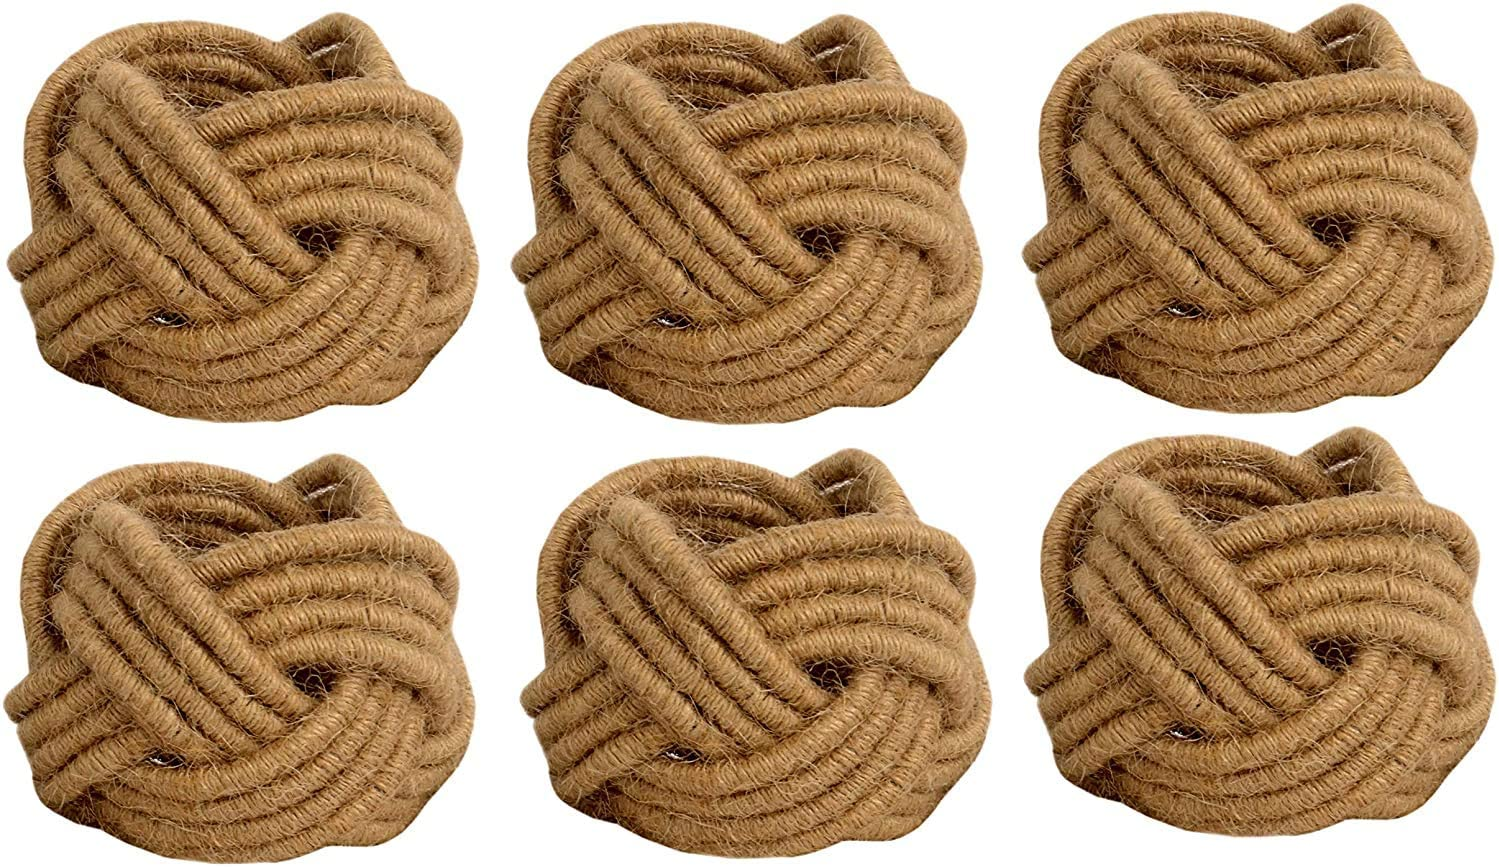 WYN_Set of 12 Classic Braided Jute Napkin Max 52% Today's only OFF Cream Rings Burlap 1